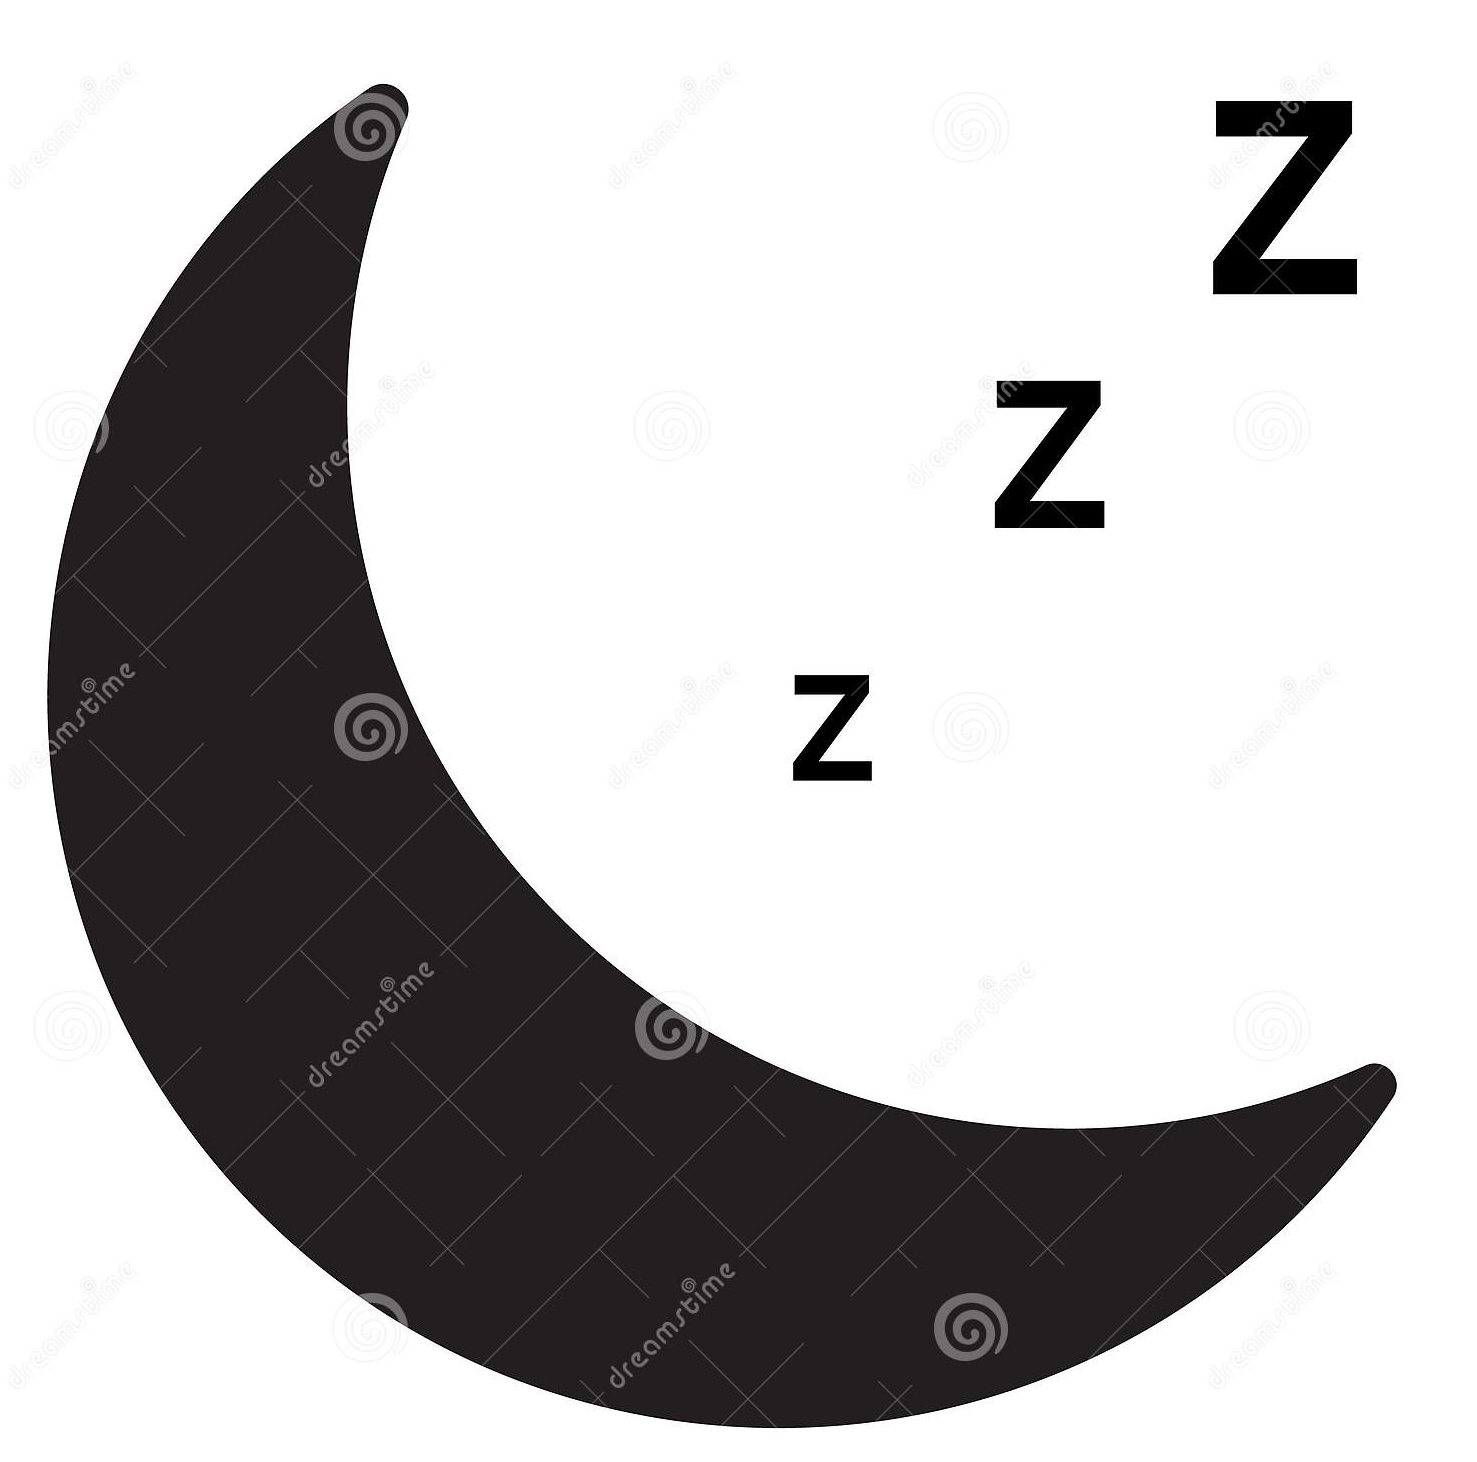 sleep-icon-white-background-your-web-site-design-logo-app-ui-sleeping-symbol-sign-flat-style-136507588